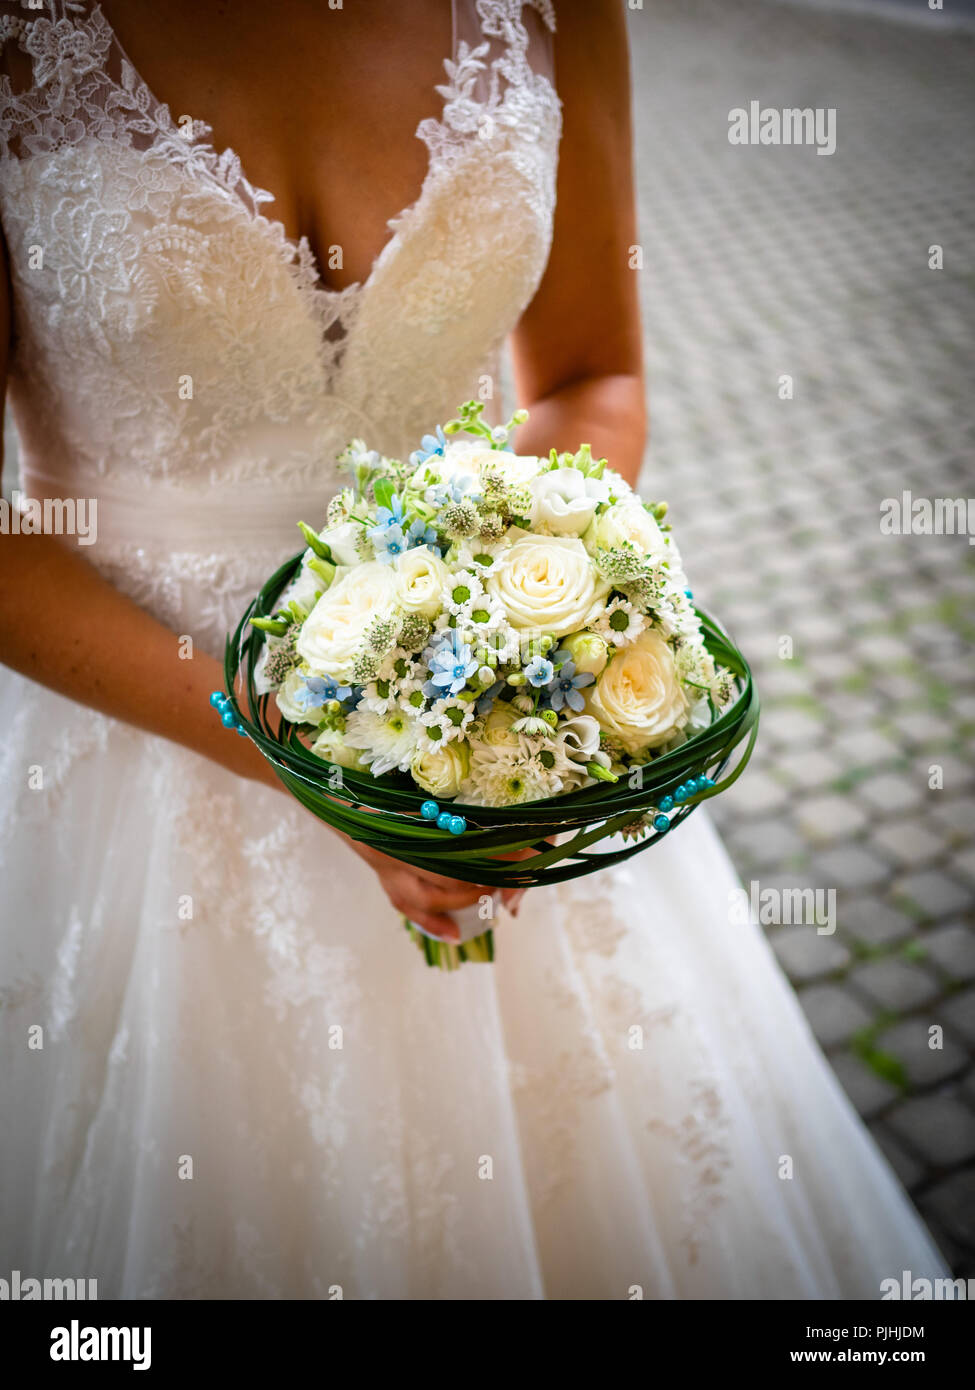 The Bride Holds The Bouquet With White Roses And Little Blue